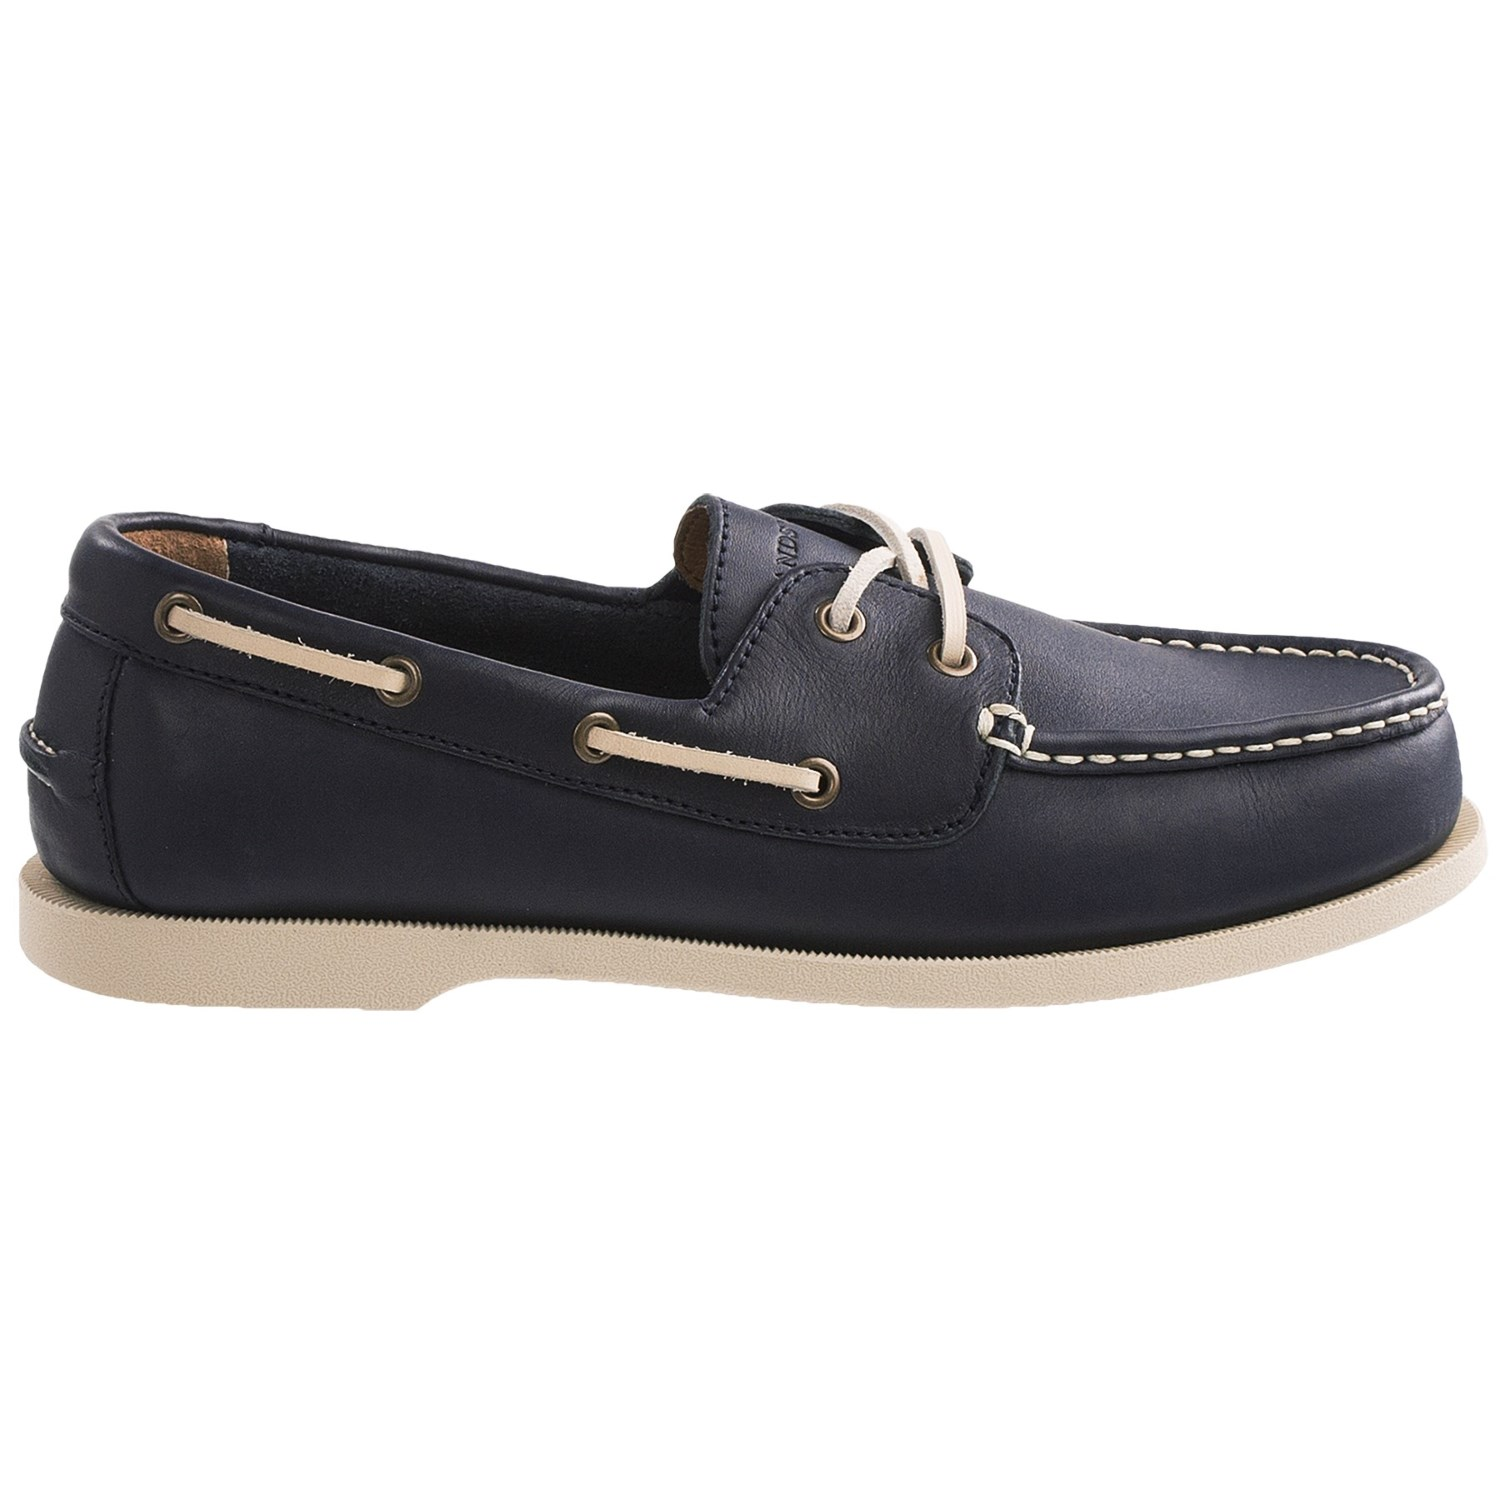 Lands' End Womens All Weather Mocs. Close. Vehicle Info Needed. Enter your vehicle's info to make sure this product fits. Yes, check compatibility. It's your call. This doesn't fit the vehicle based on the information you provided. Edit vehicle info That's ok, I want this!